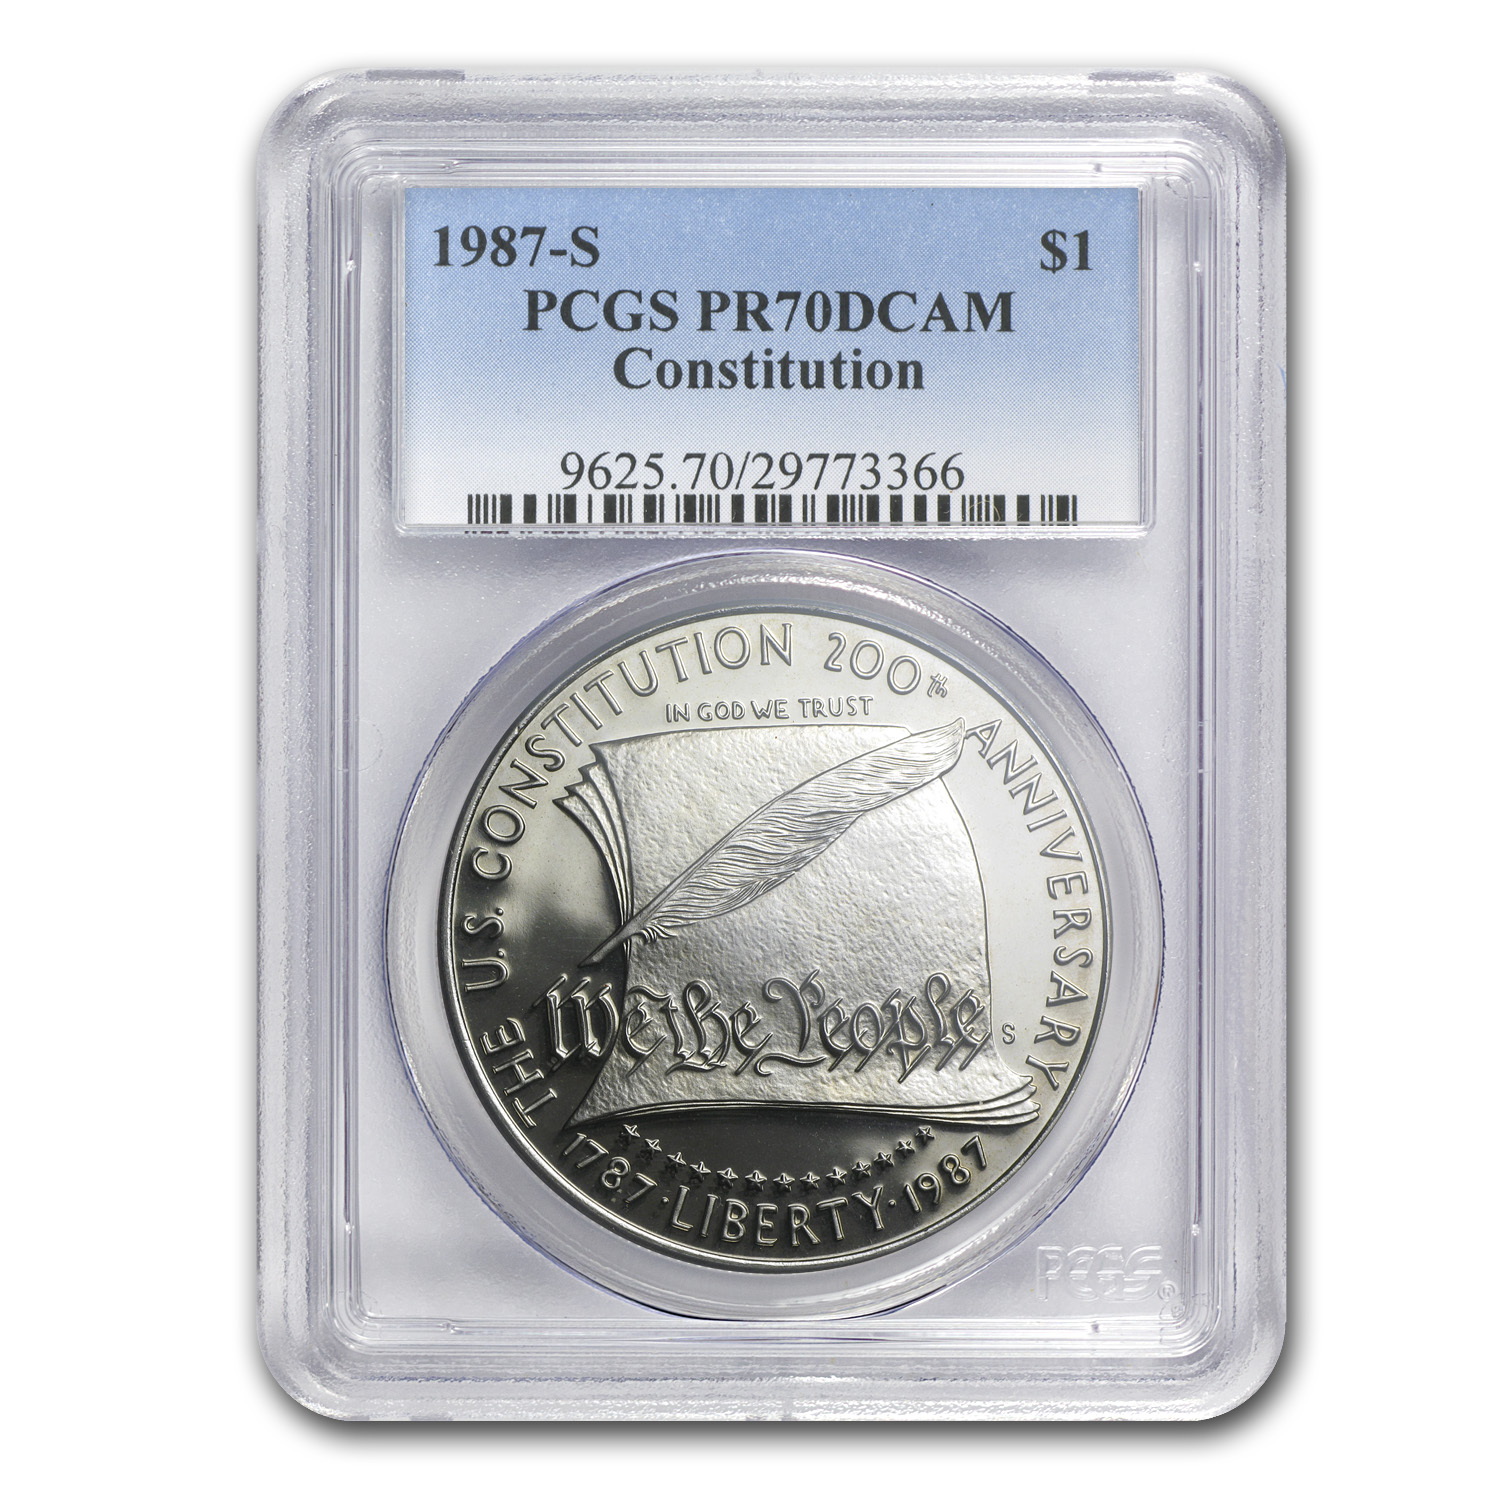 1987-S Constitution $1 Silver Commemorative PR-70 PCGS